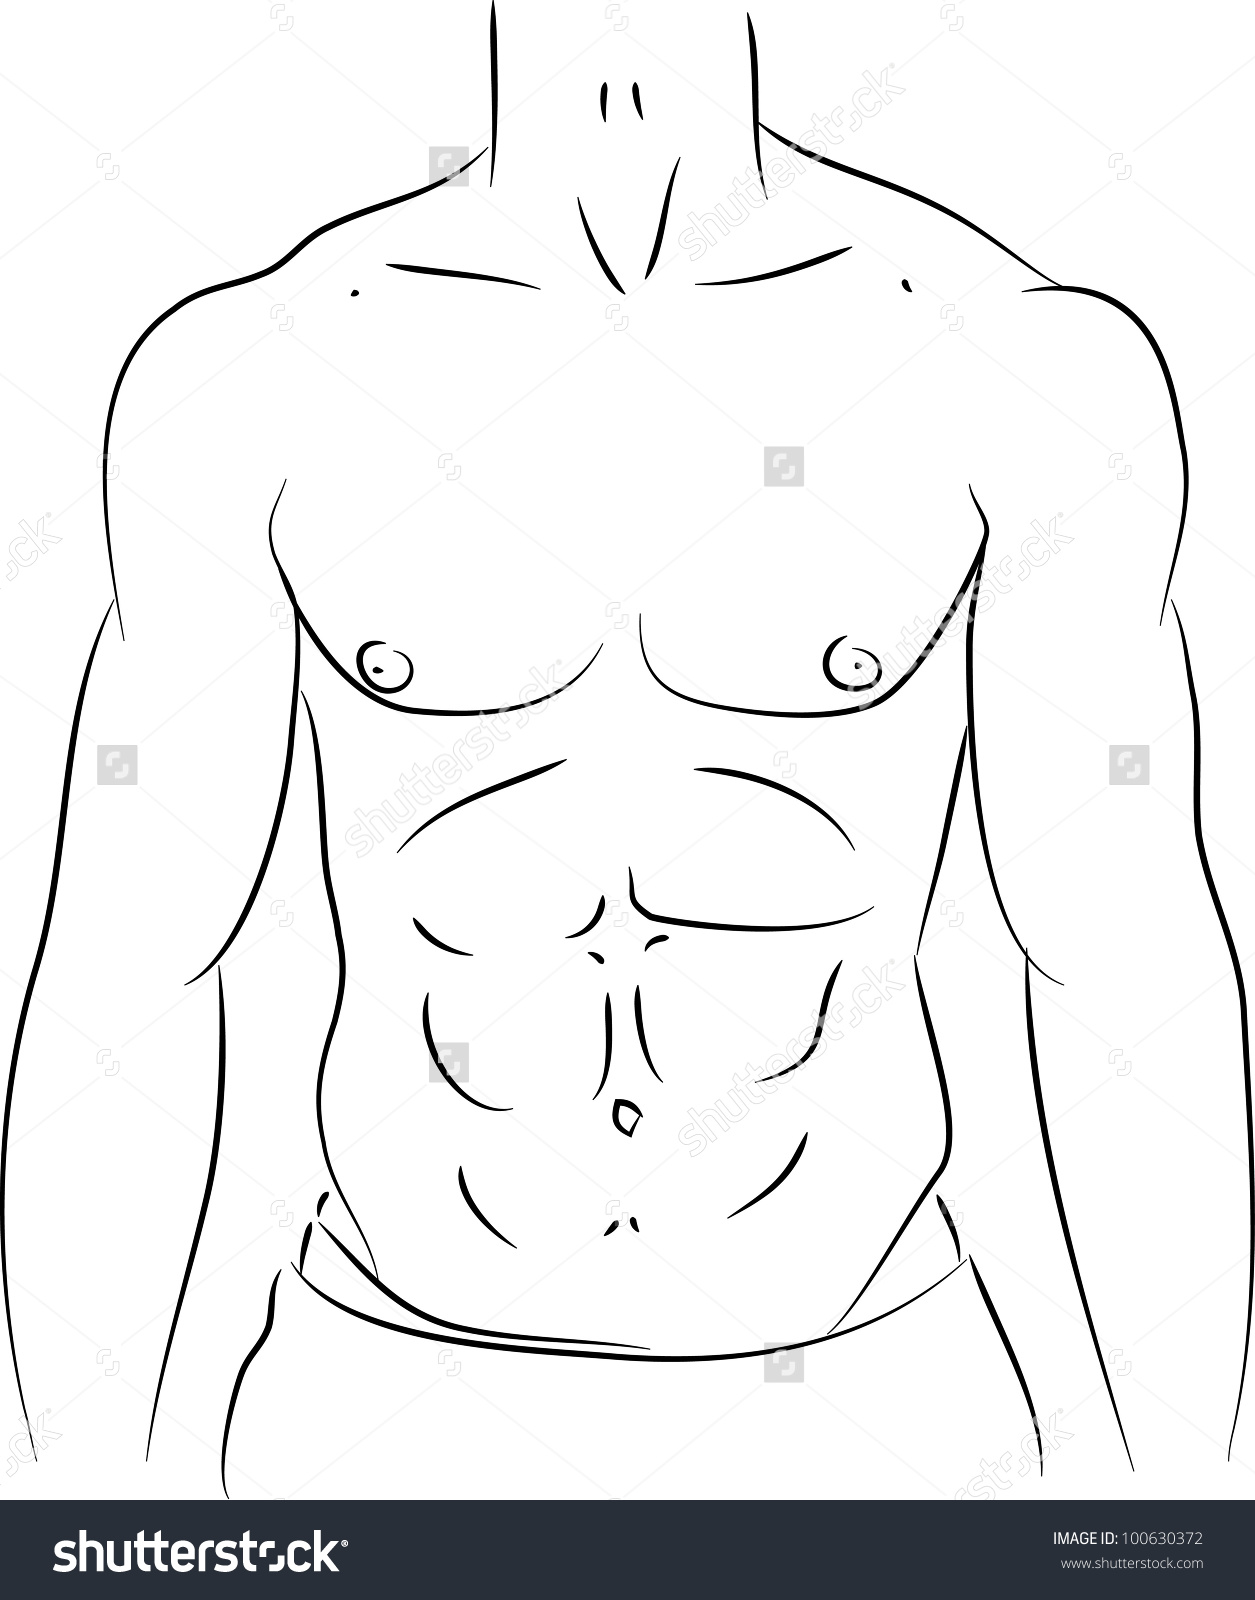 Six pack abs clipart - ClipartFest graphic stock